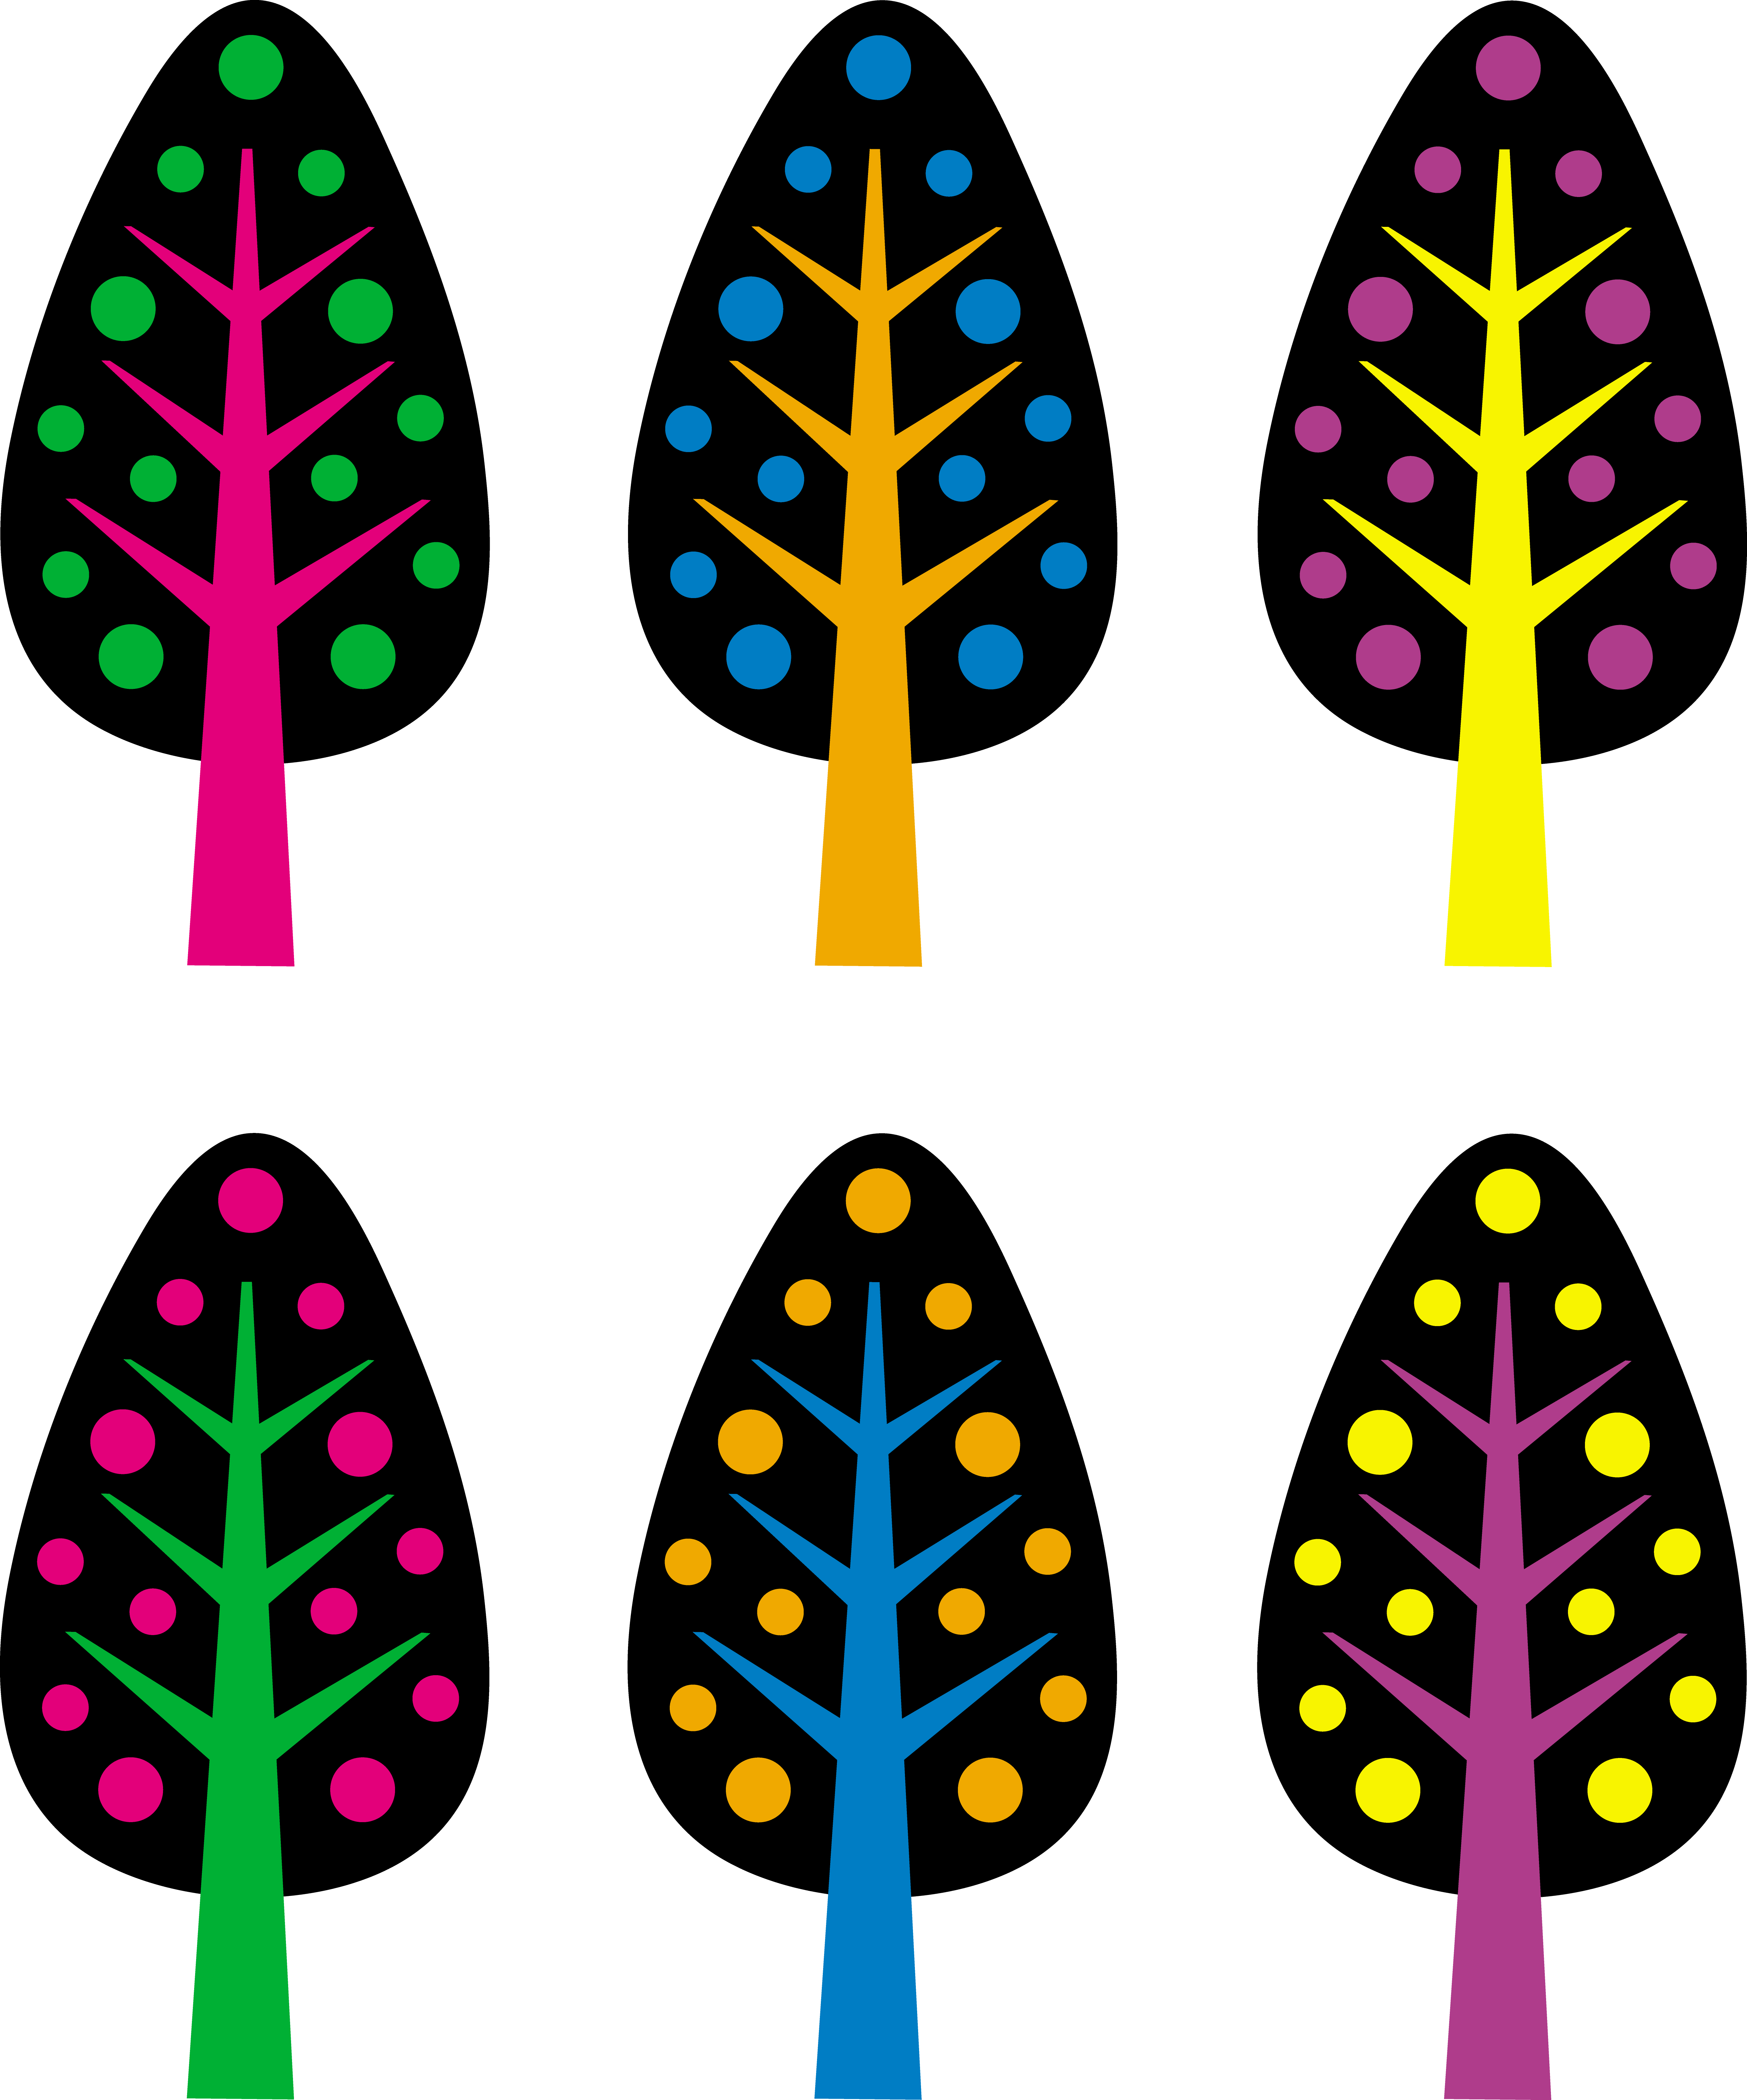 5444x6545 Cute Neon Christmas Trees